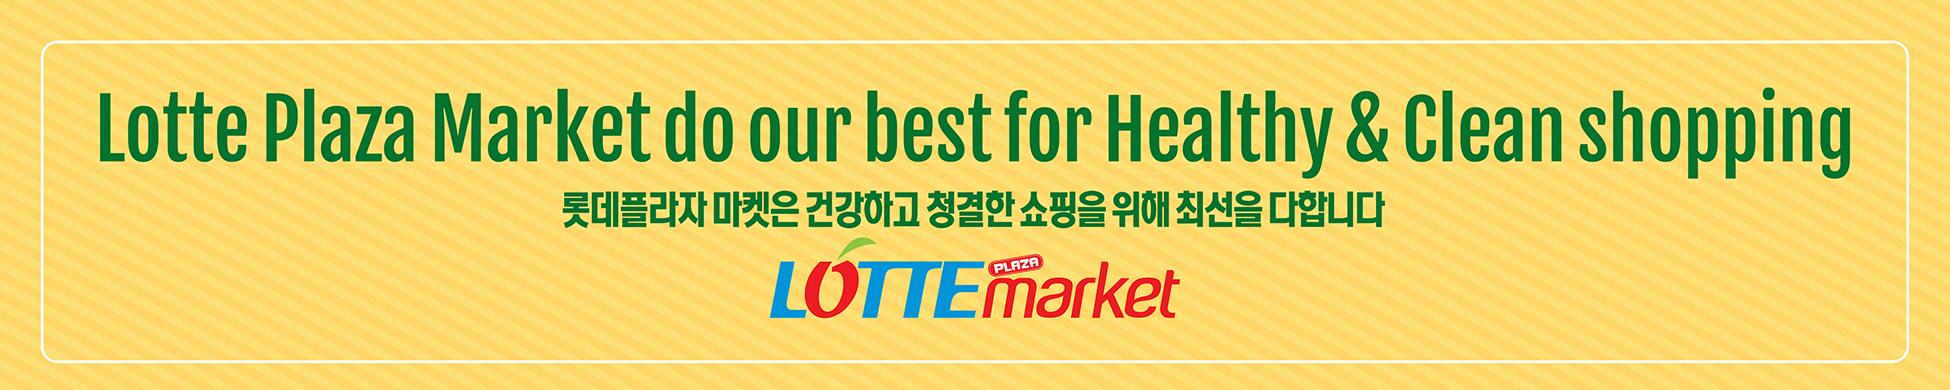 Lotte Plaza Korean Supermarkets In Md Va Lotte plaza market aspires to be the joy giving international food market since 1976. lotte plaza korean supermarkets in md